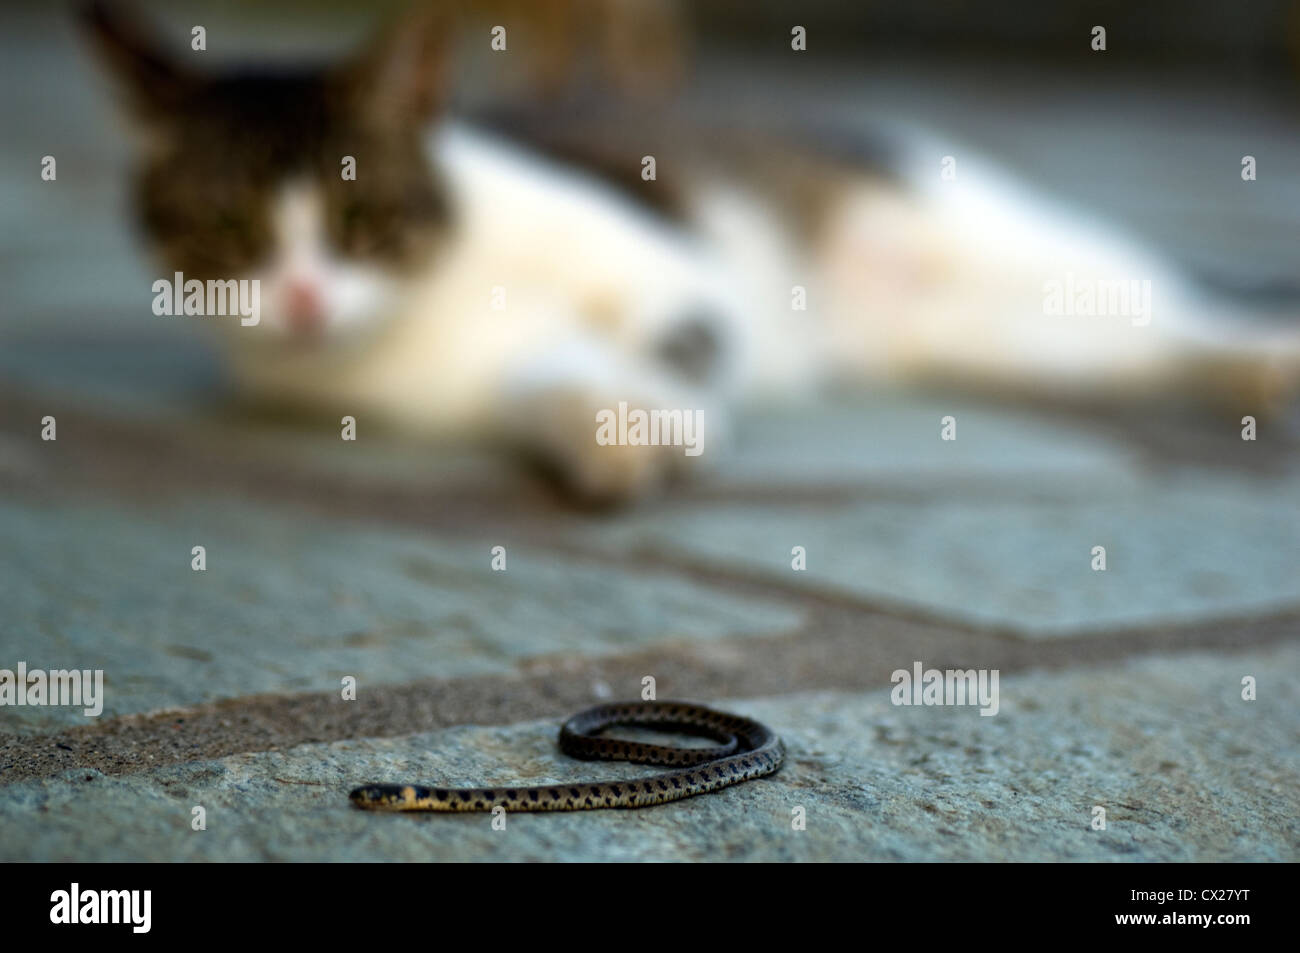 Small snake in the sights of a cat - Stock Image